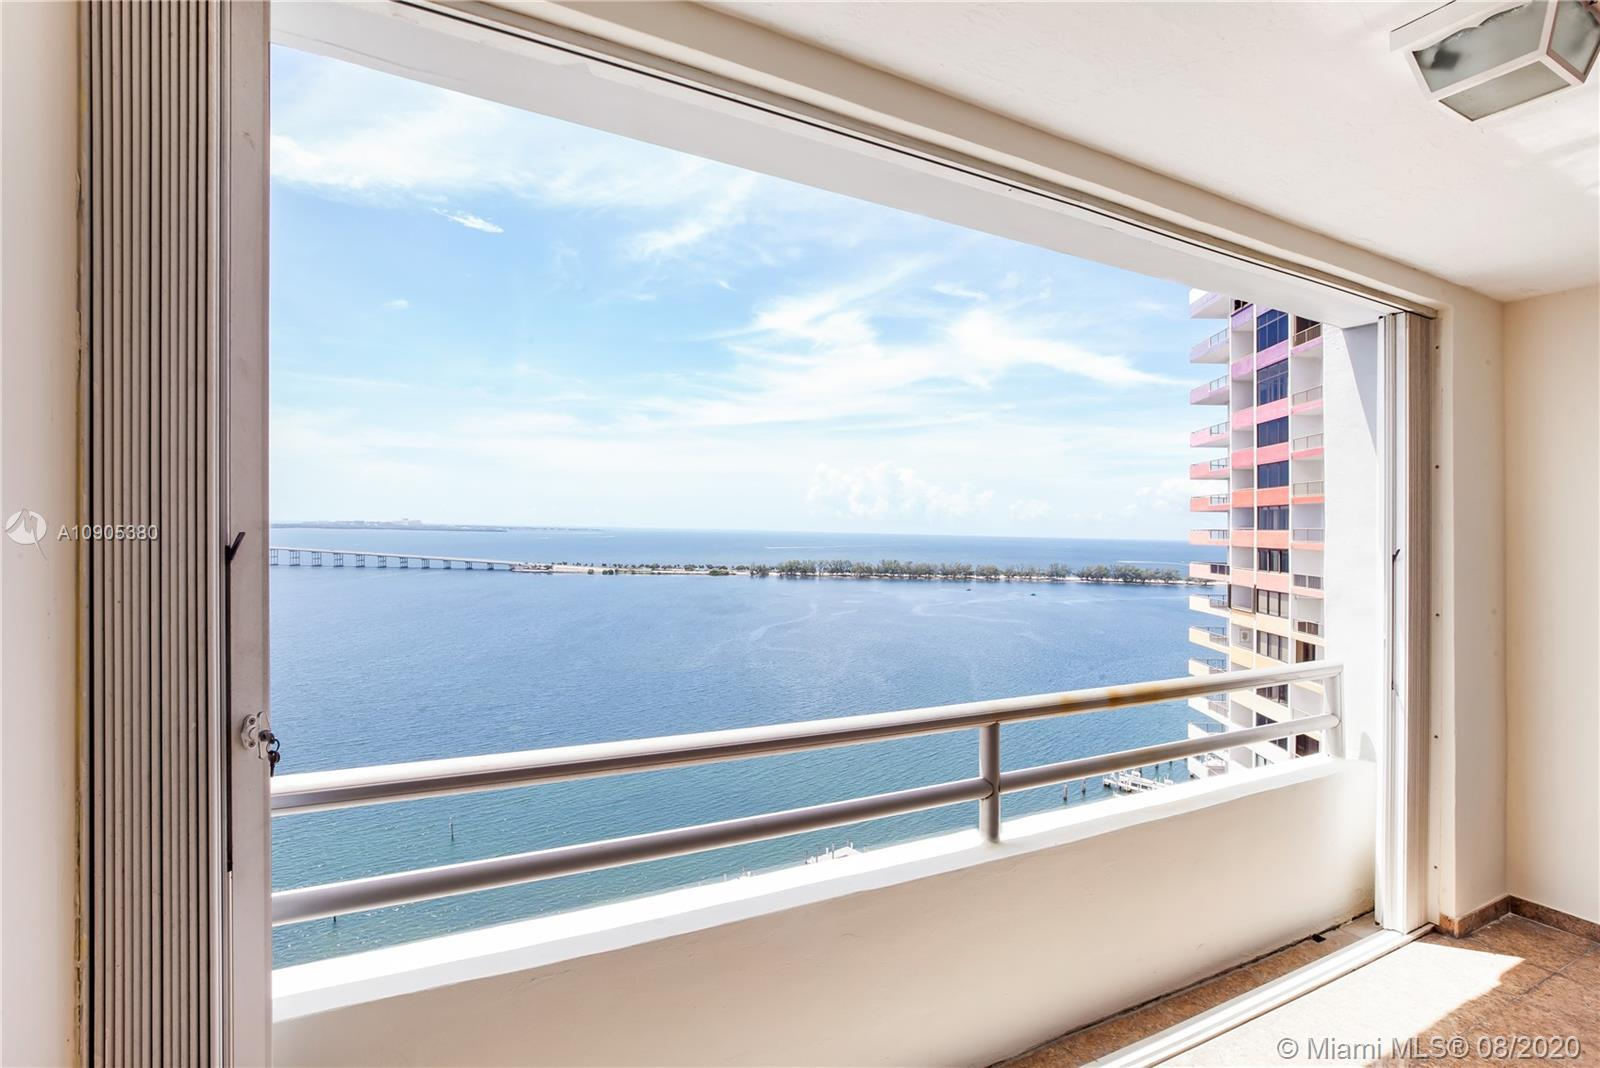 Highly desirable, bright 2Bedroom/2Bathroom corner unit with 2 parking spaces. Spacious (1,697 SqFt)